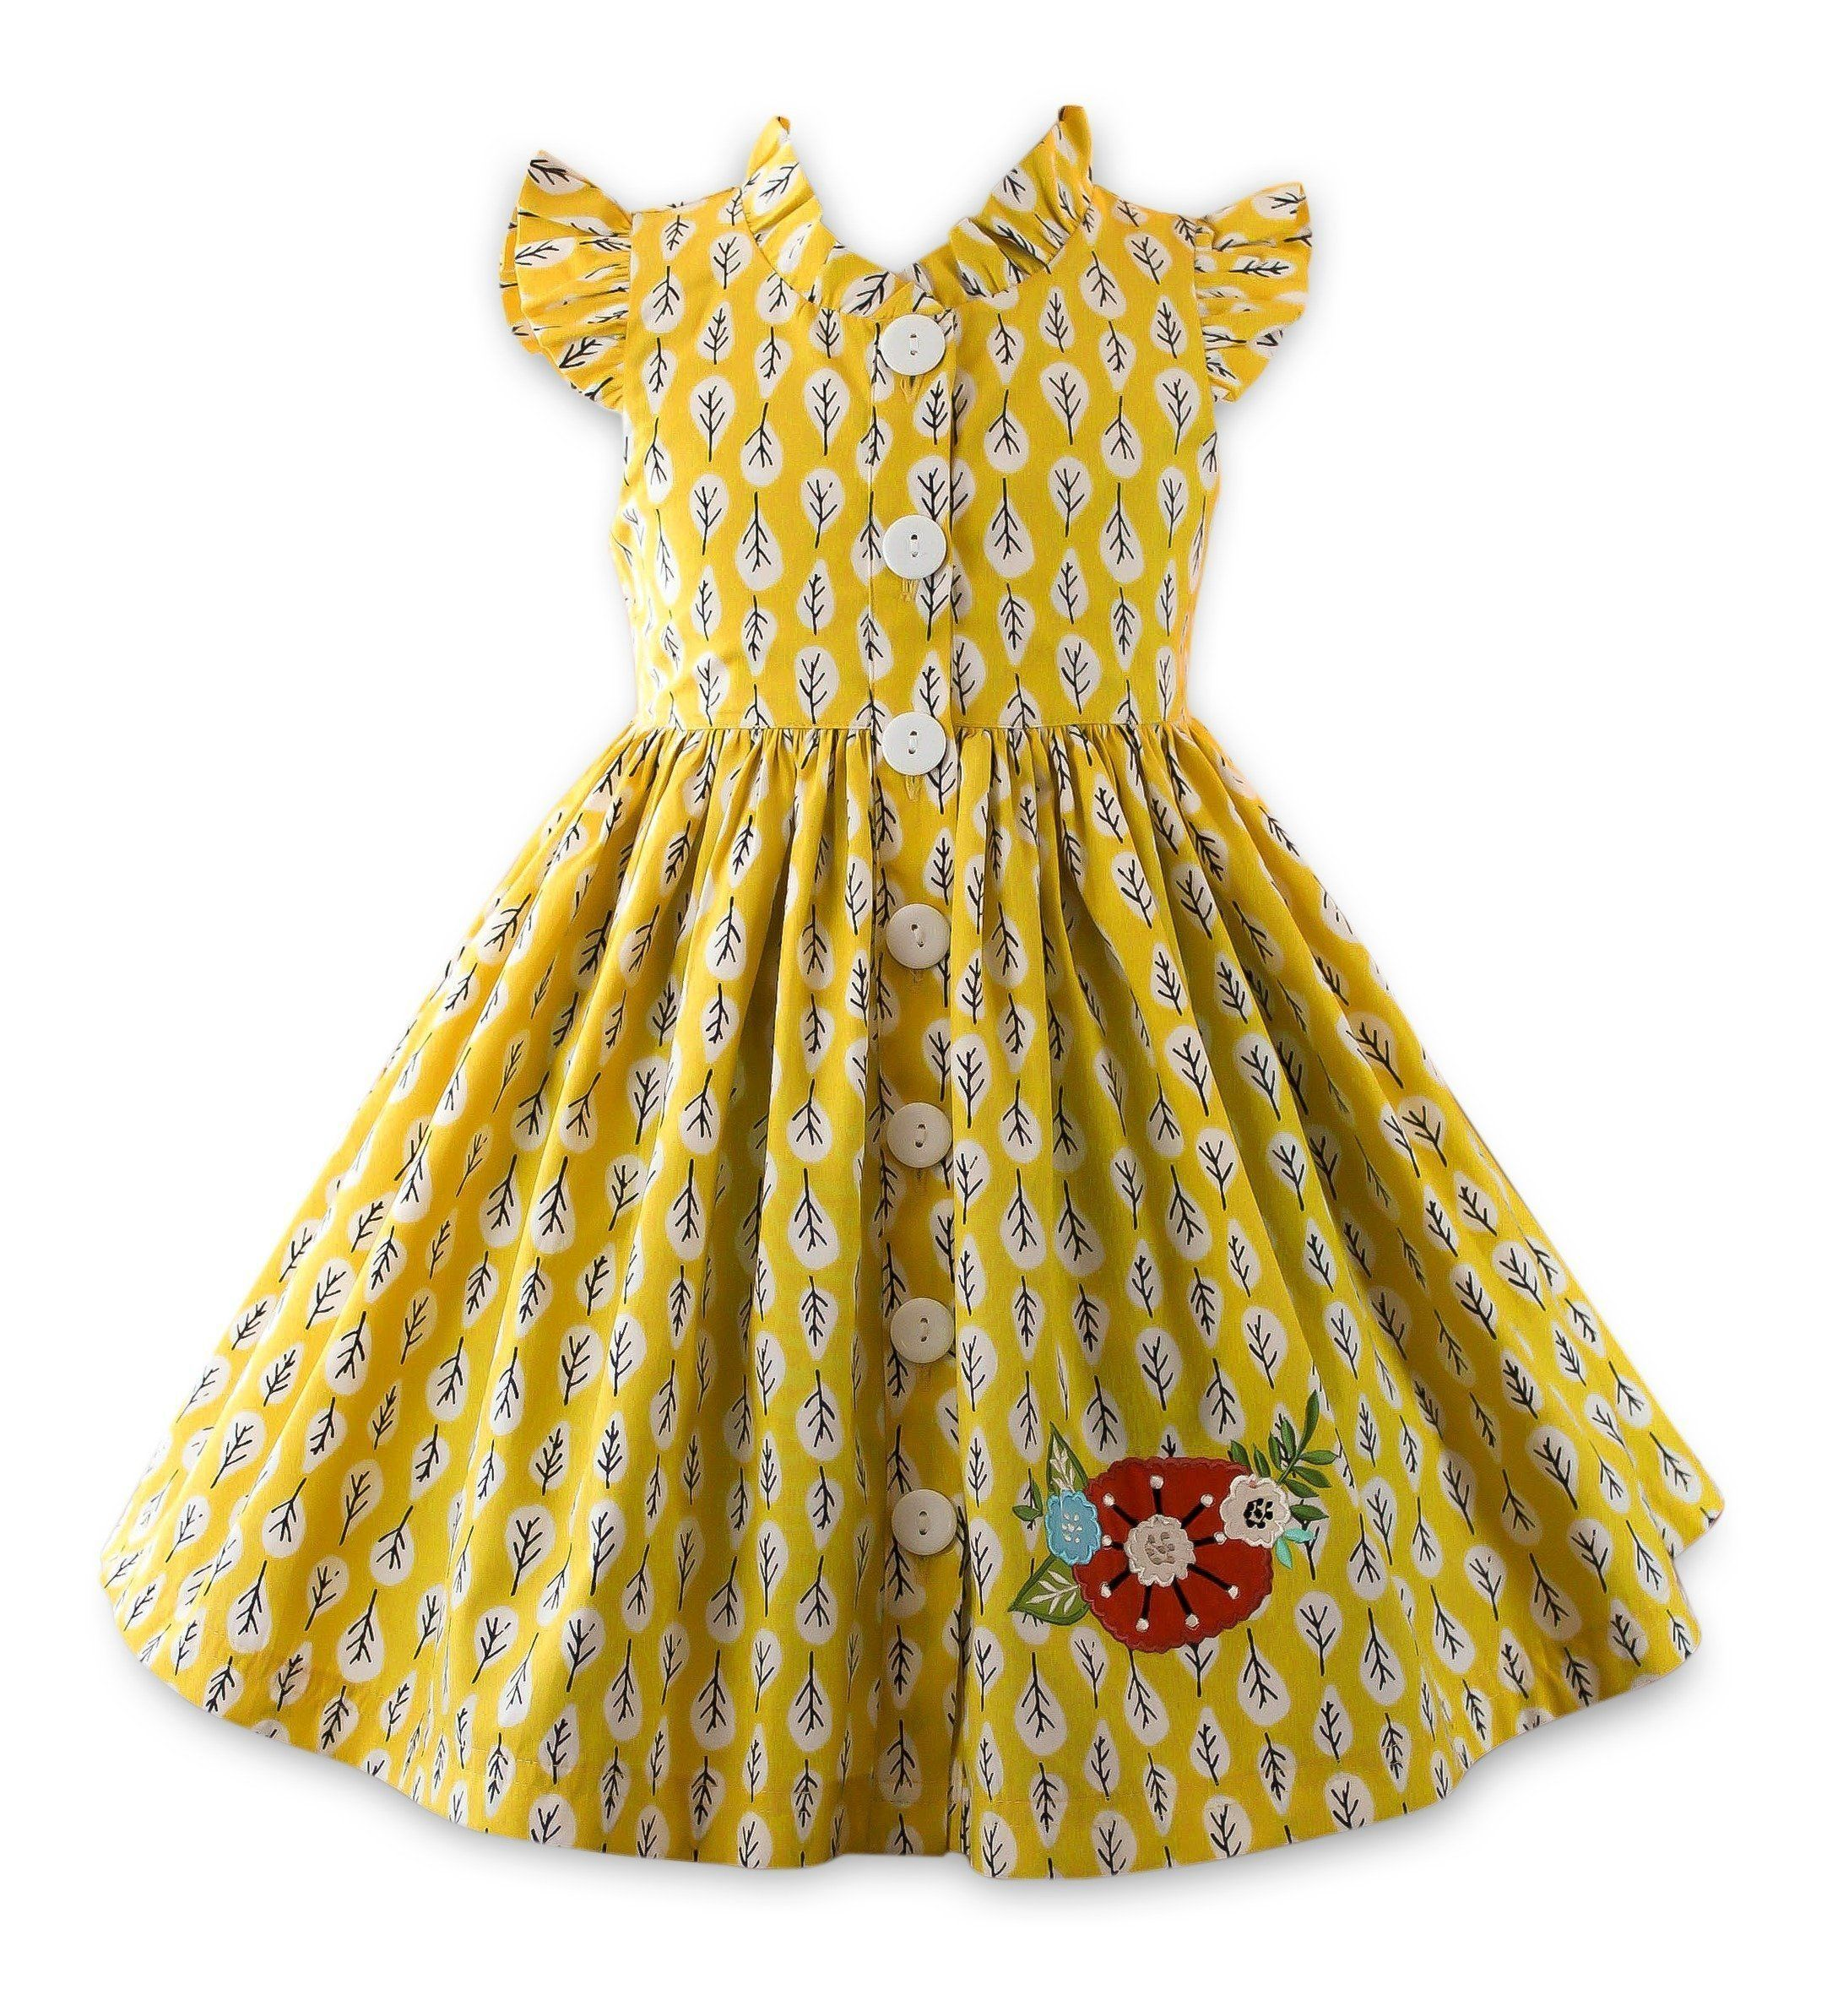 Little Miss Marmalade Girls Vintage Inspired Clothing